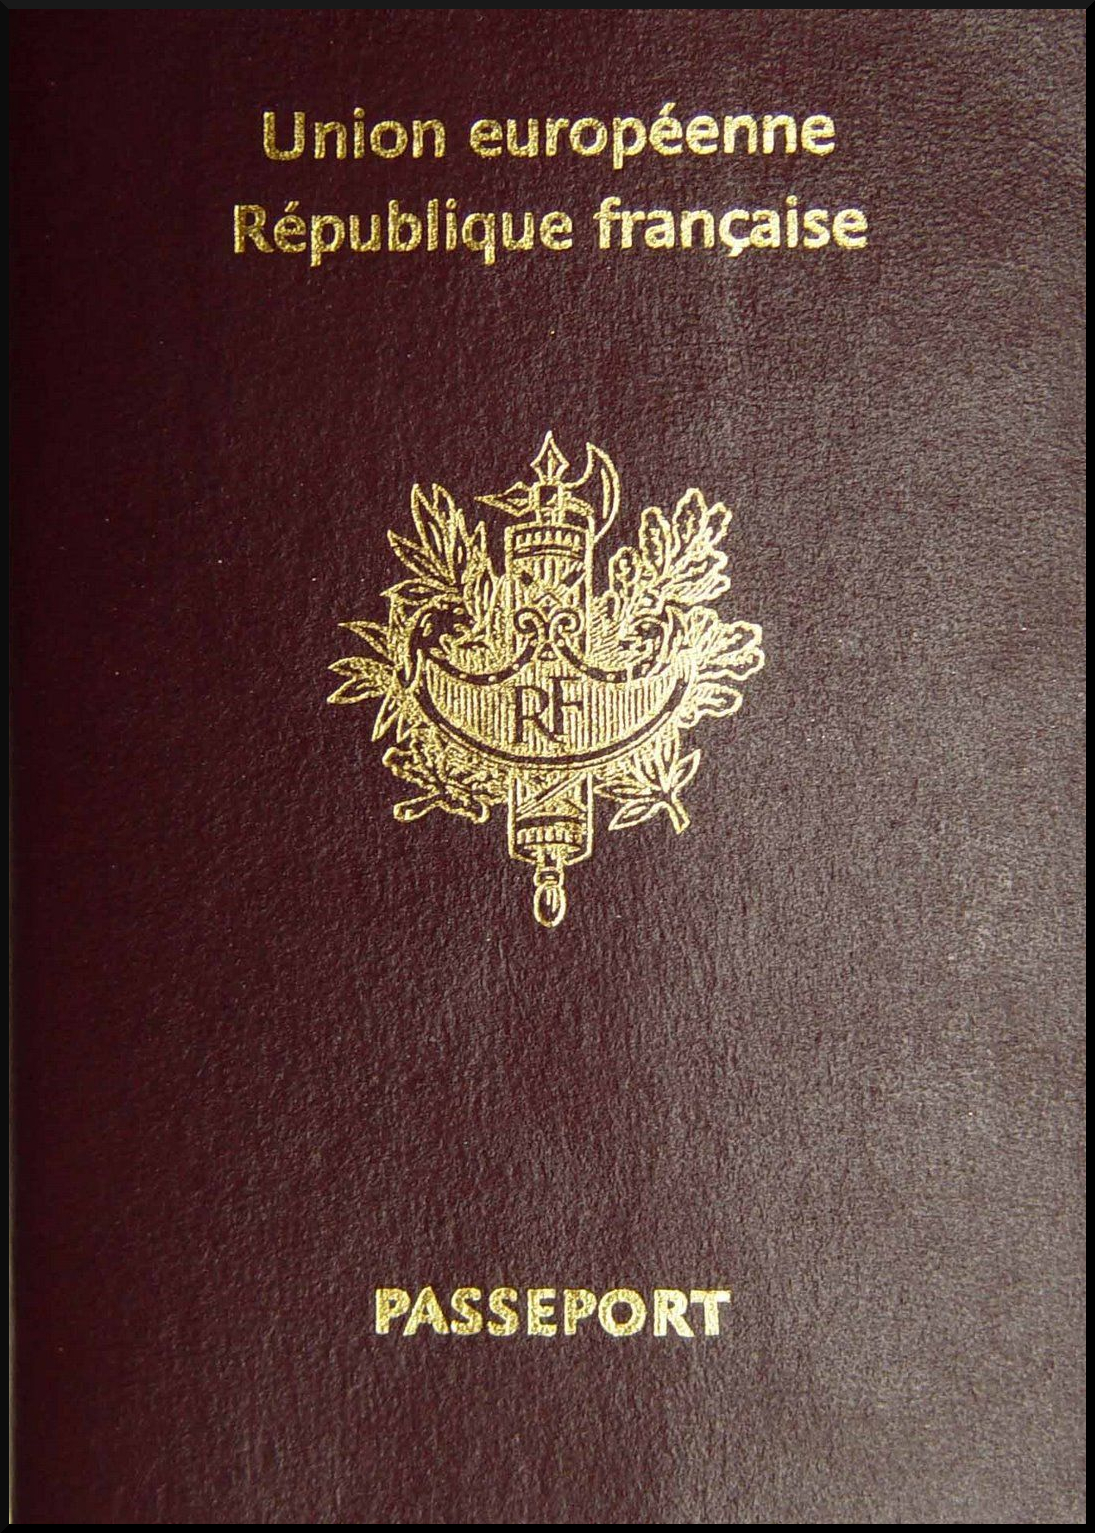 Passport of the citizen of France